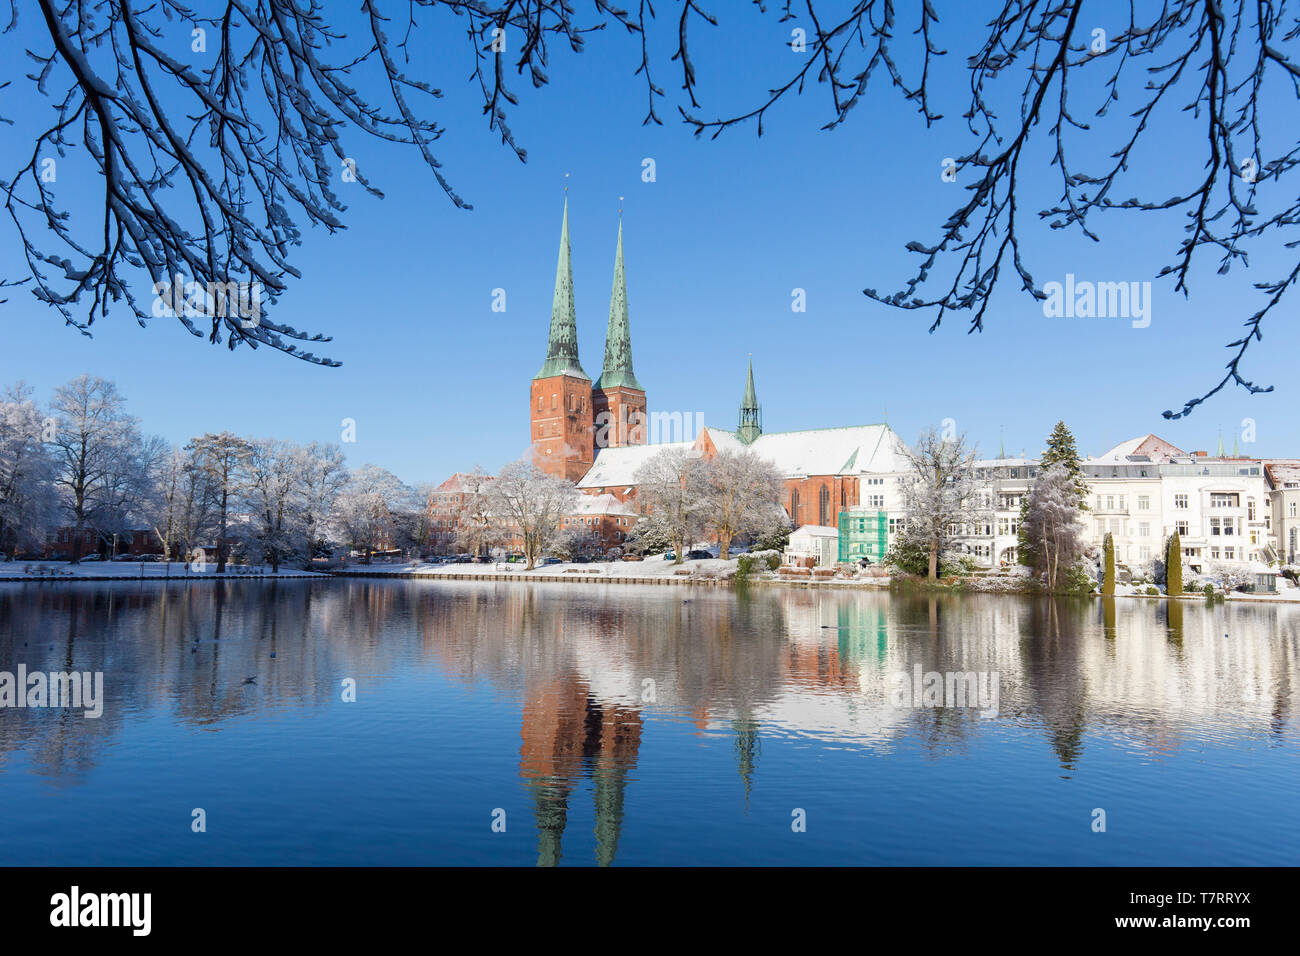 Lübeck Cathedral / Dom zu Lübeck / Lübecker Dom along the river Trave in the Hanseatic town Luebeck in winter, Schleswig-Holstein, Germany - Stock Image